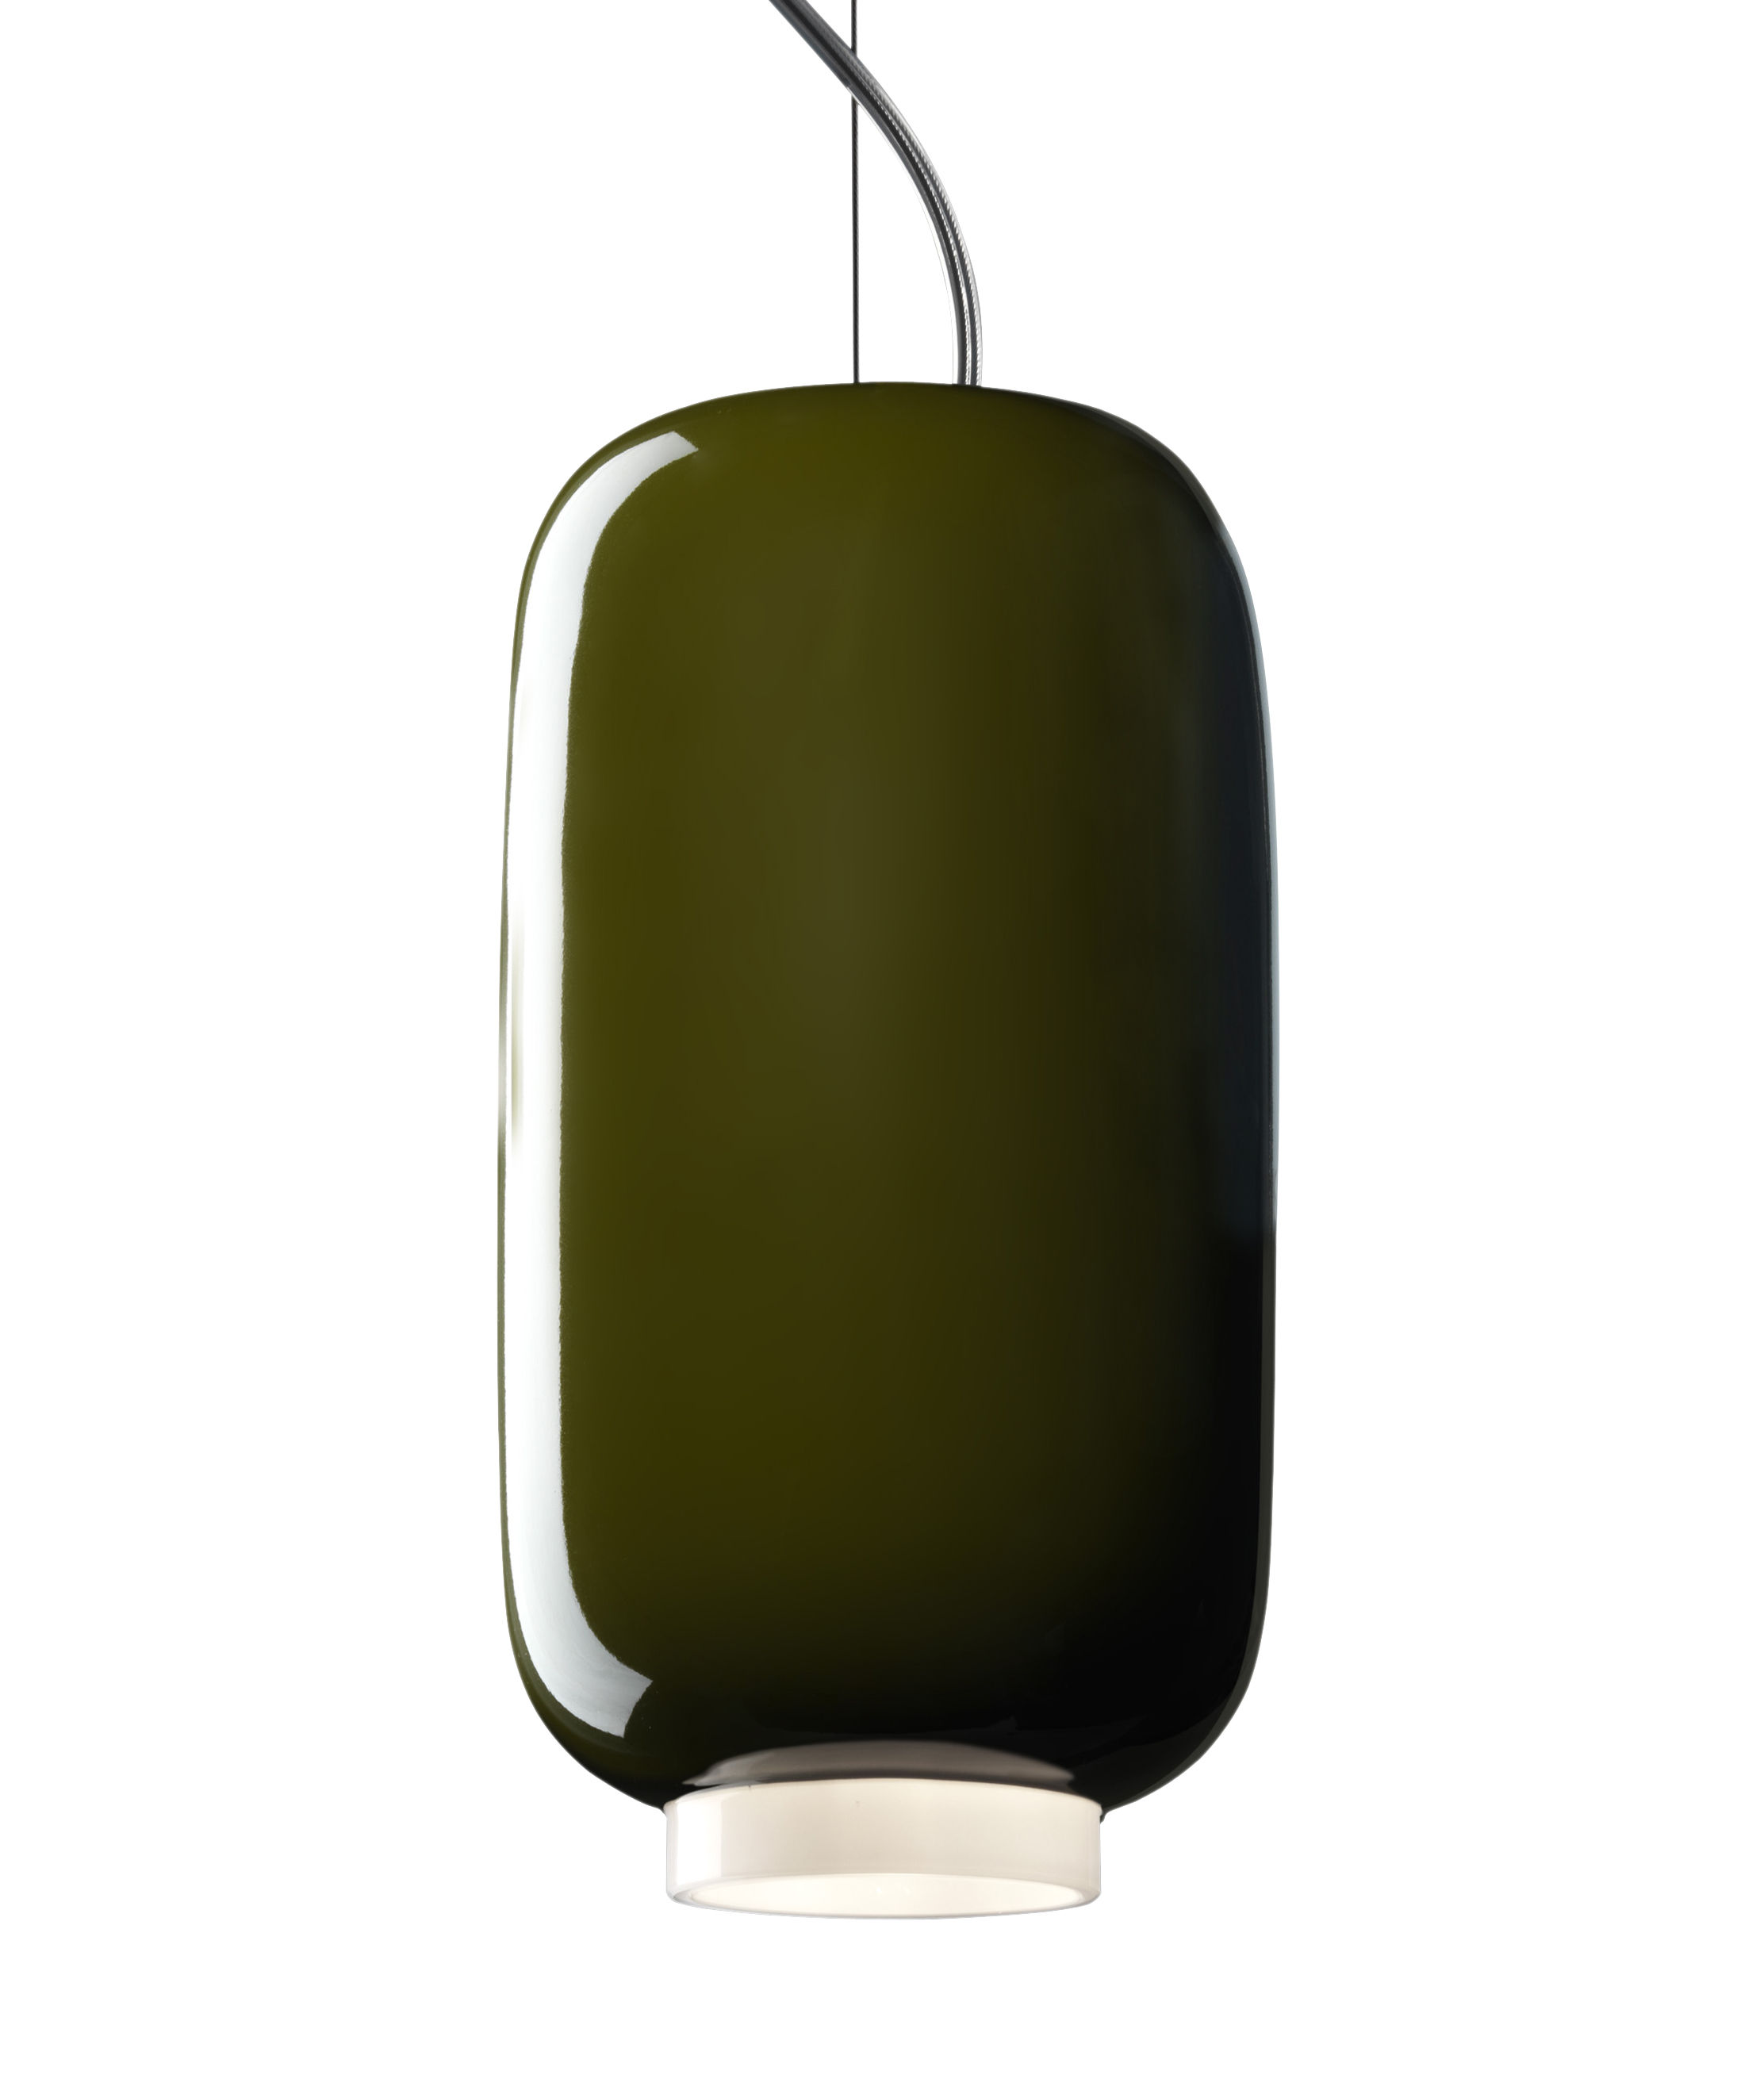 Lighting - Pendant Lighting - Chouchin Mini n°2 Pendant by Foscarini - Green - Mouth blown glass